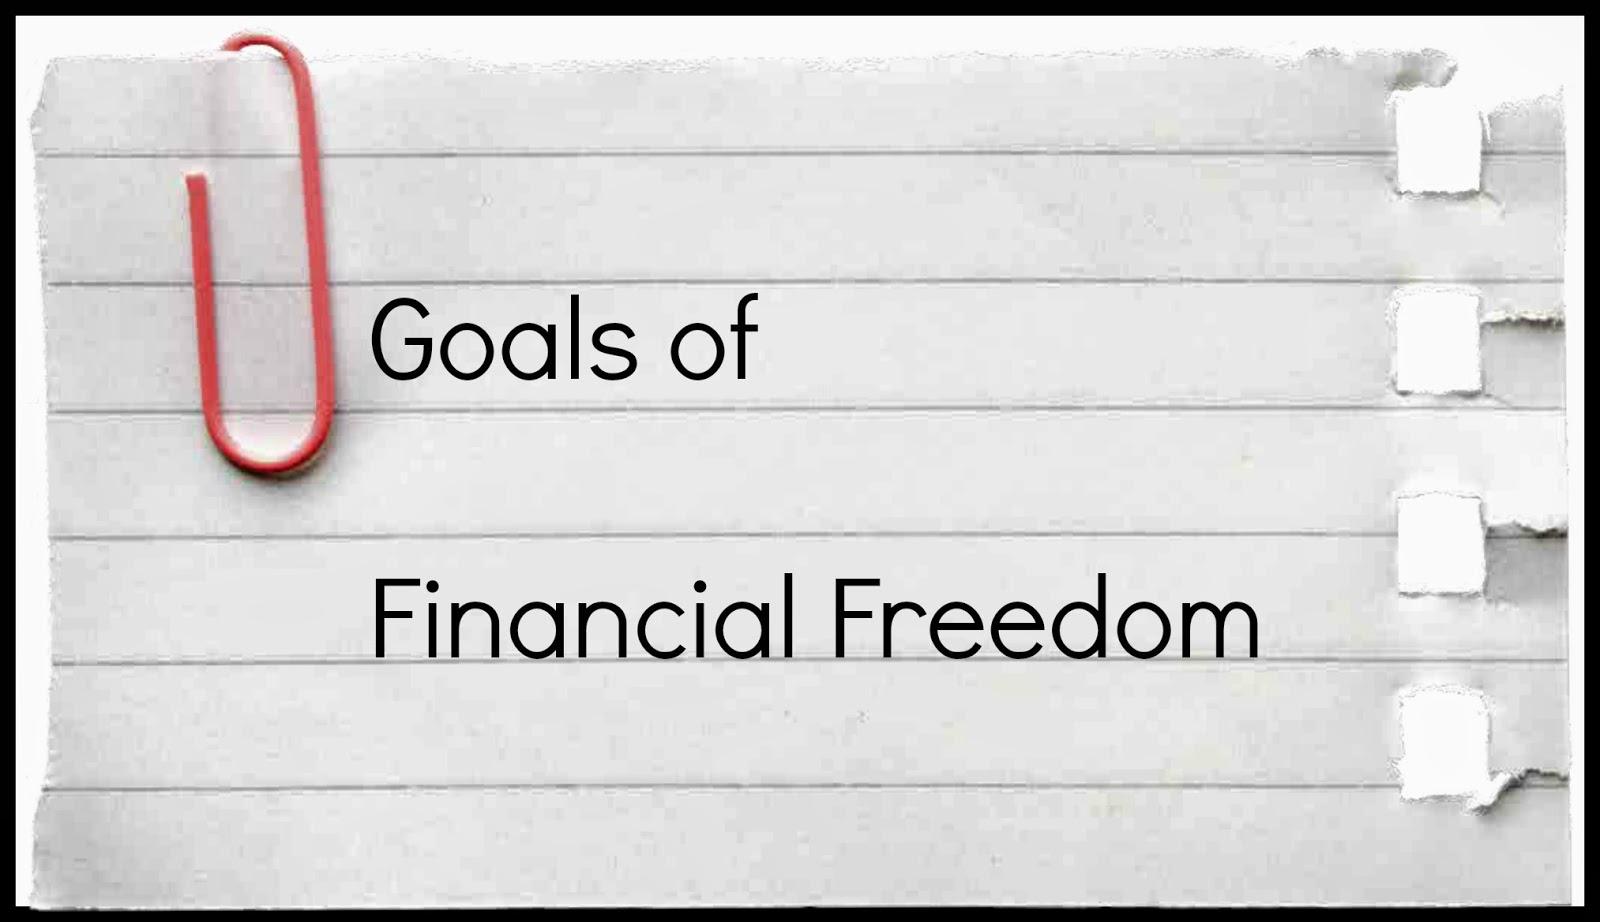 Goals of Financial Freedom